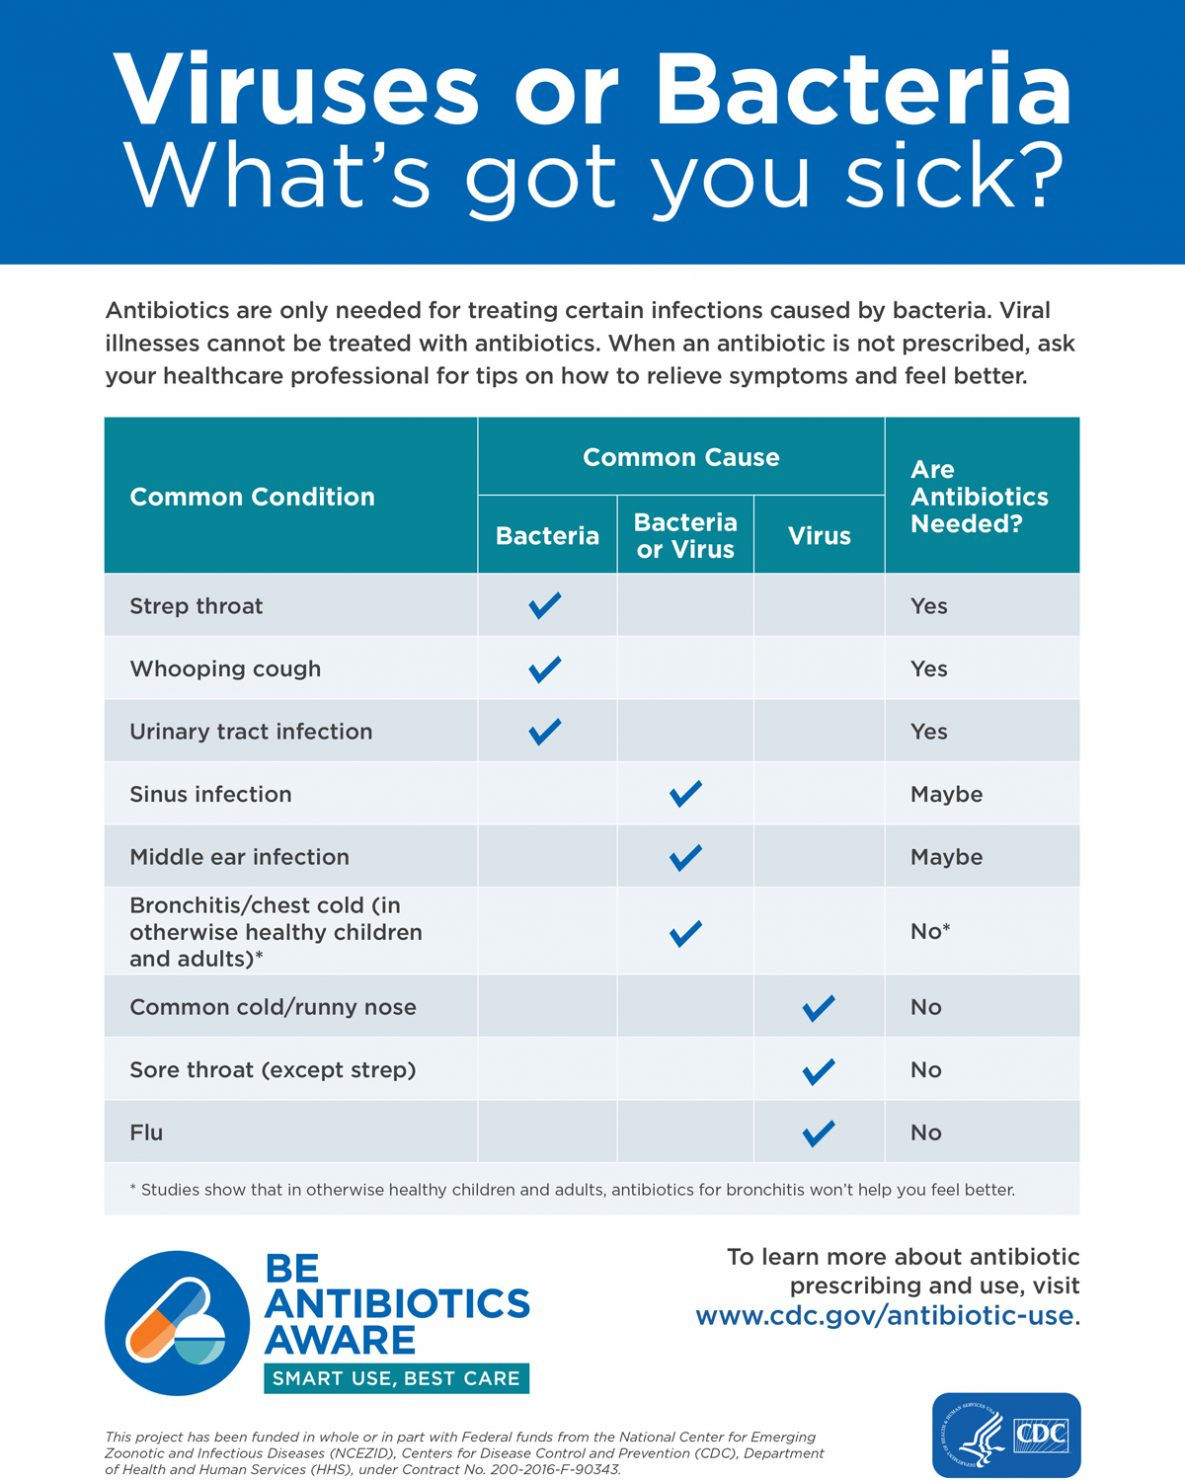 Chart of Illnesses and Antibiotics Needed or Not Needed